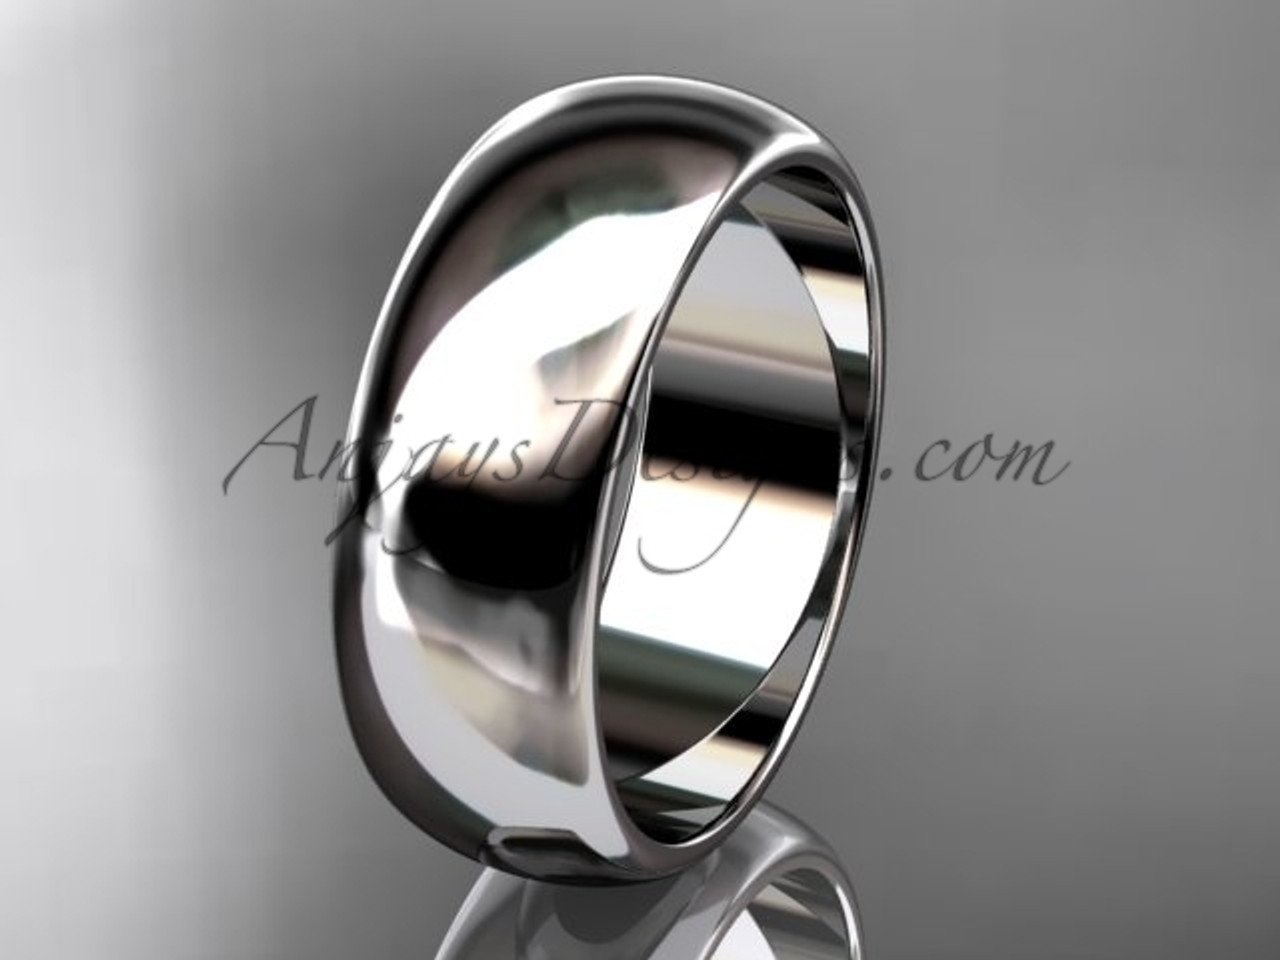 14k white gold traditional 7mm wide wedding band WB50107G